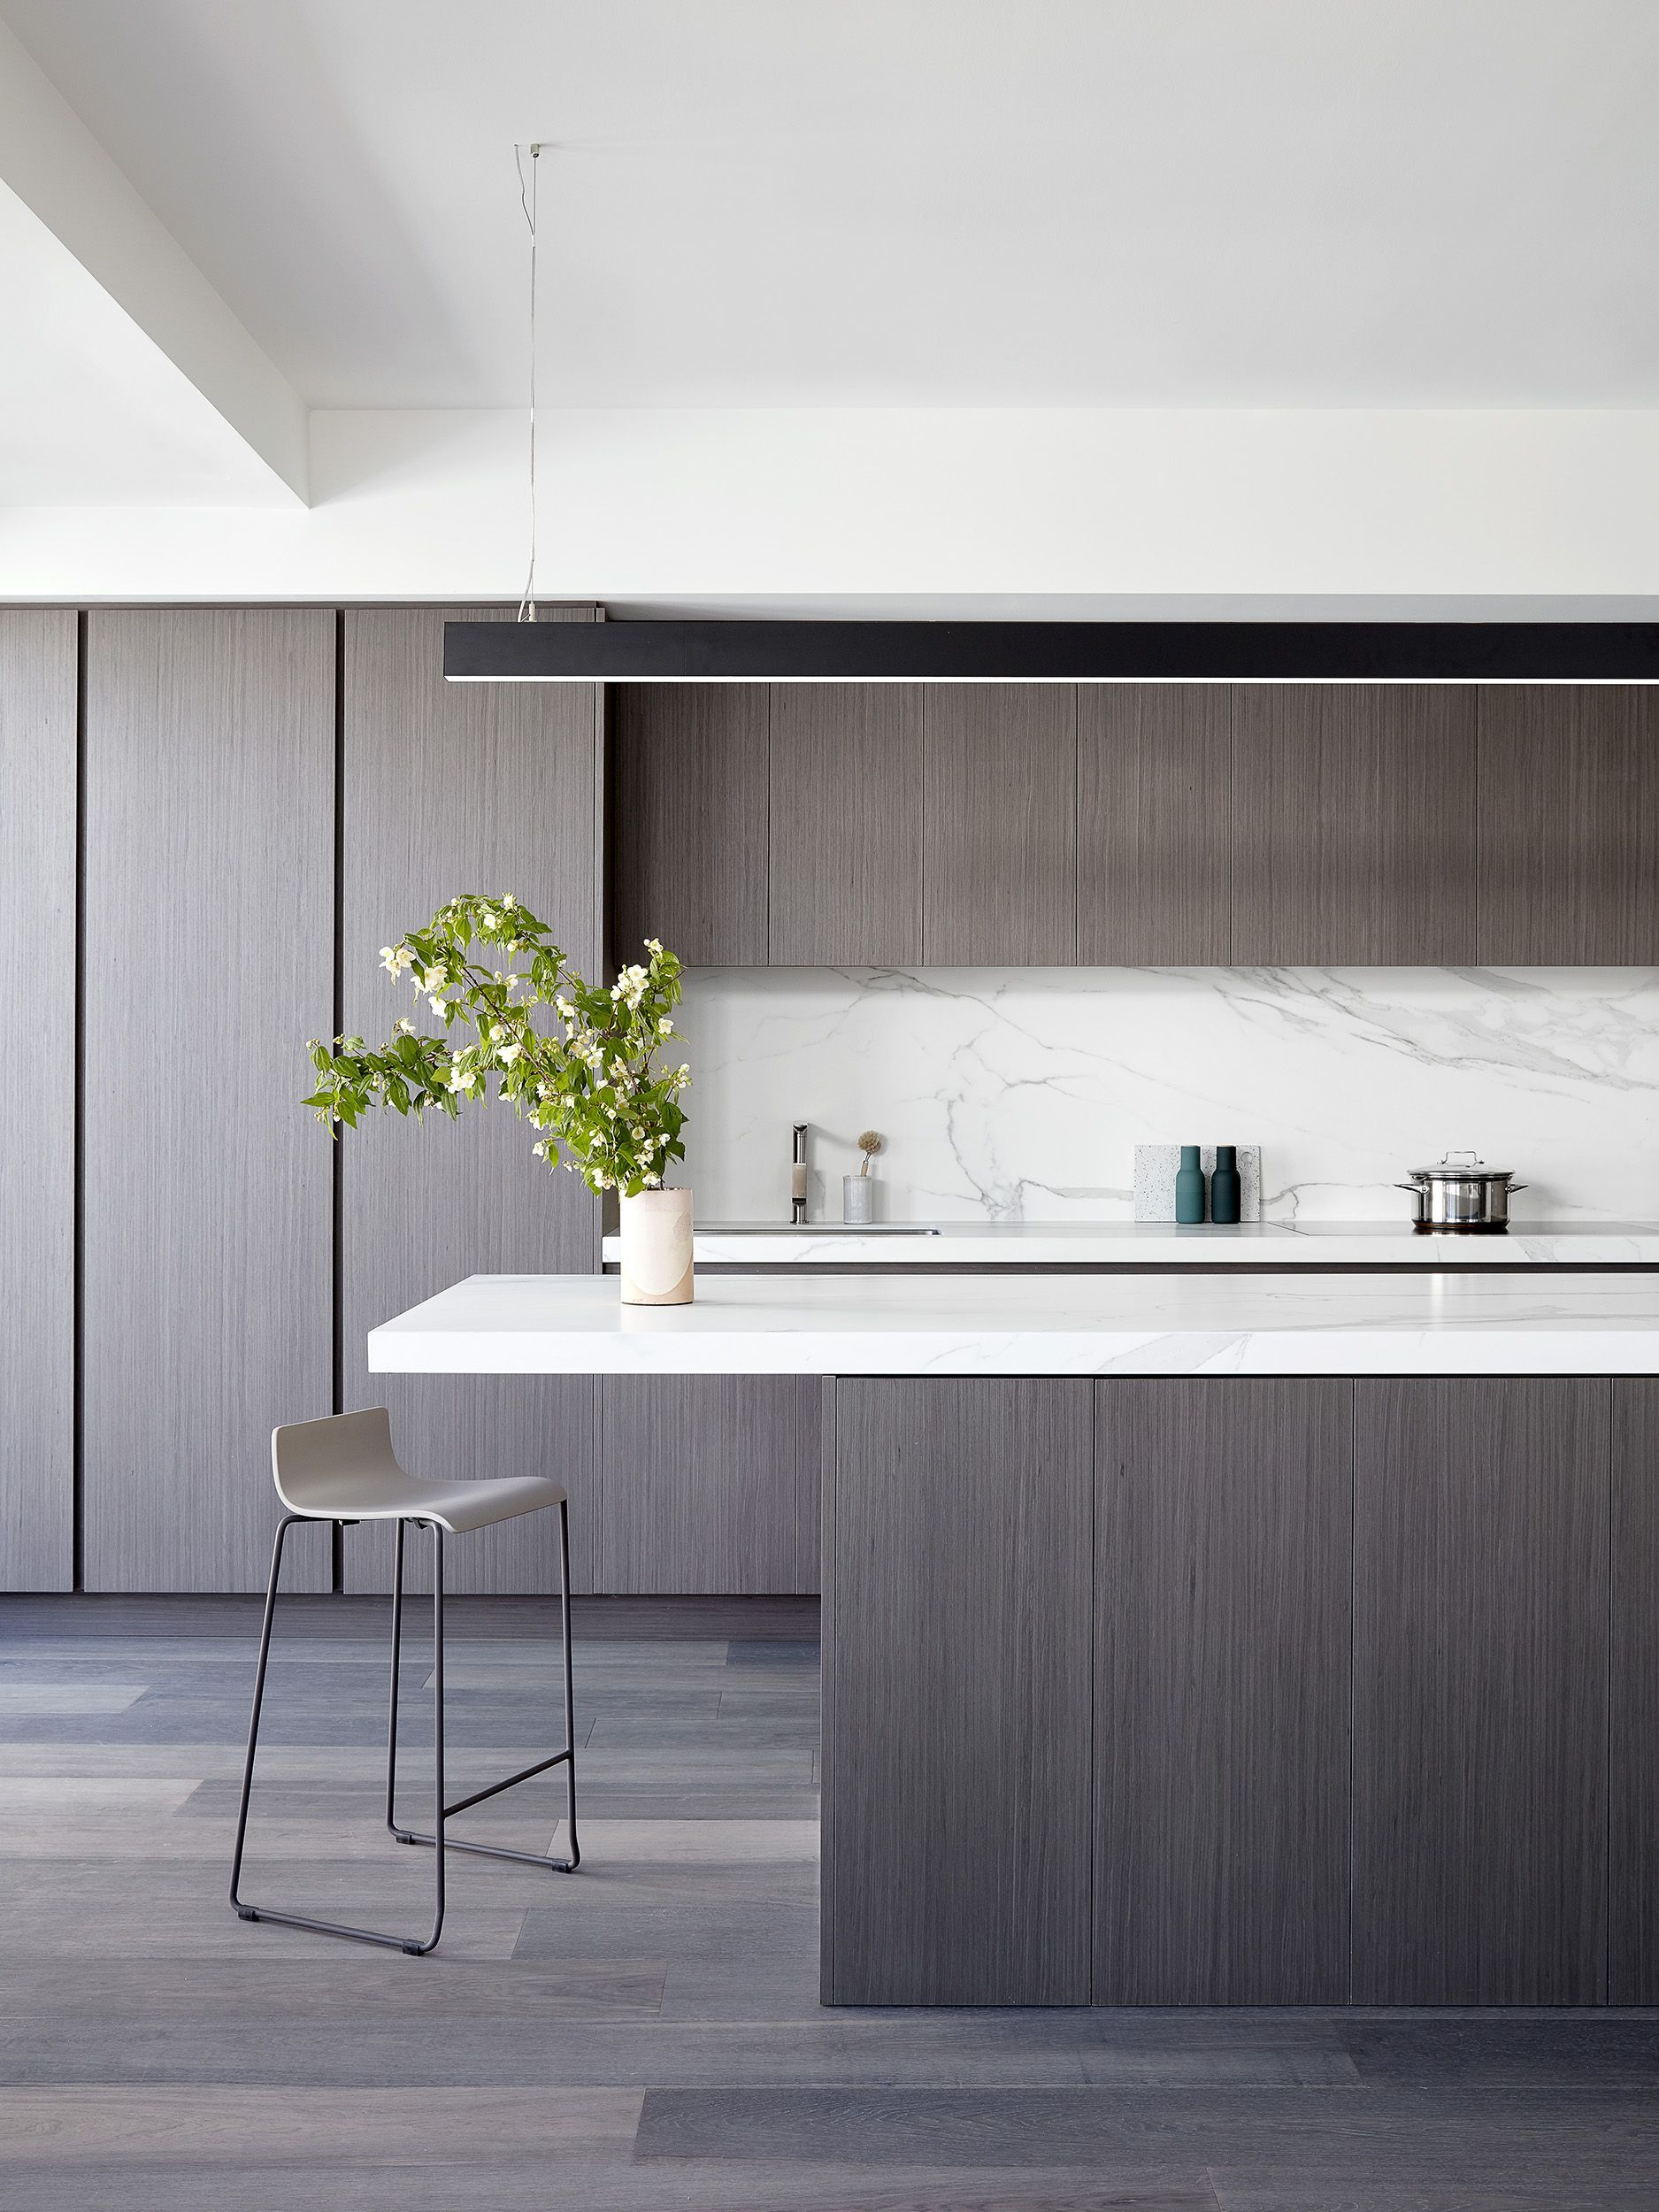 Gallery Of Powerhouse By Glow Design Group In Williamstown, Vic,